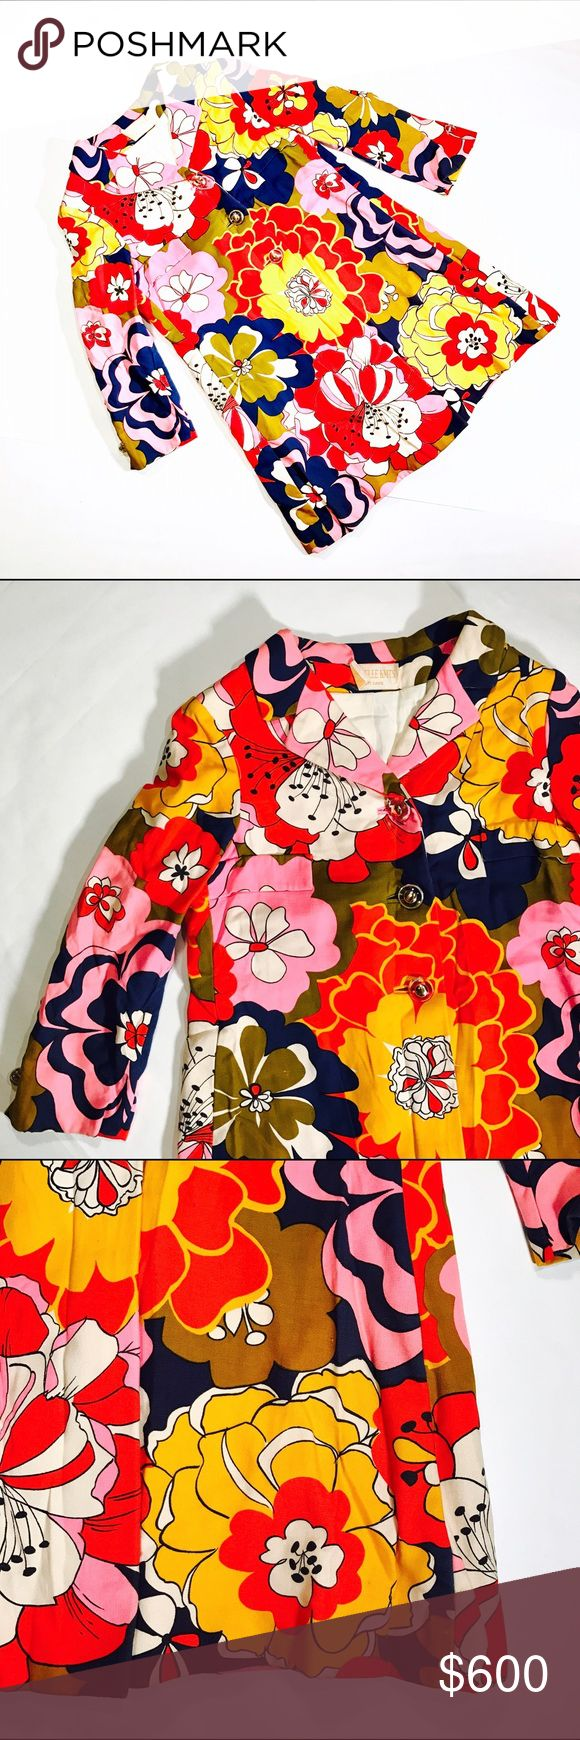 """VINTAGE 1960's  MAM'SELLE KNITS BETTY CAROL It's really this bright! So vibrant and gorgeous. 100% authentic 1960s, extremely rare find! Fully lined, original buttons. This is a swing coat, measurements seem large but this is appx an XS/2/4 (arms are small and 3/4 length)             CONDITION: EUC, minimal signs of wear esp for vintage  CHEST:  40"""" WAIST: 38"""" LENGTH: 34"""" *All measurements taken flat (doubled when necessary) and measured across the front  MATERIAL: ? STRETCH: min/none…"""